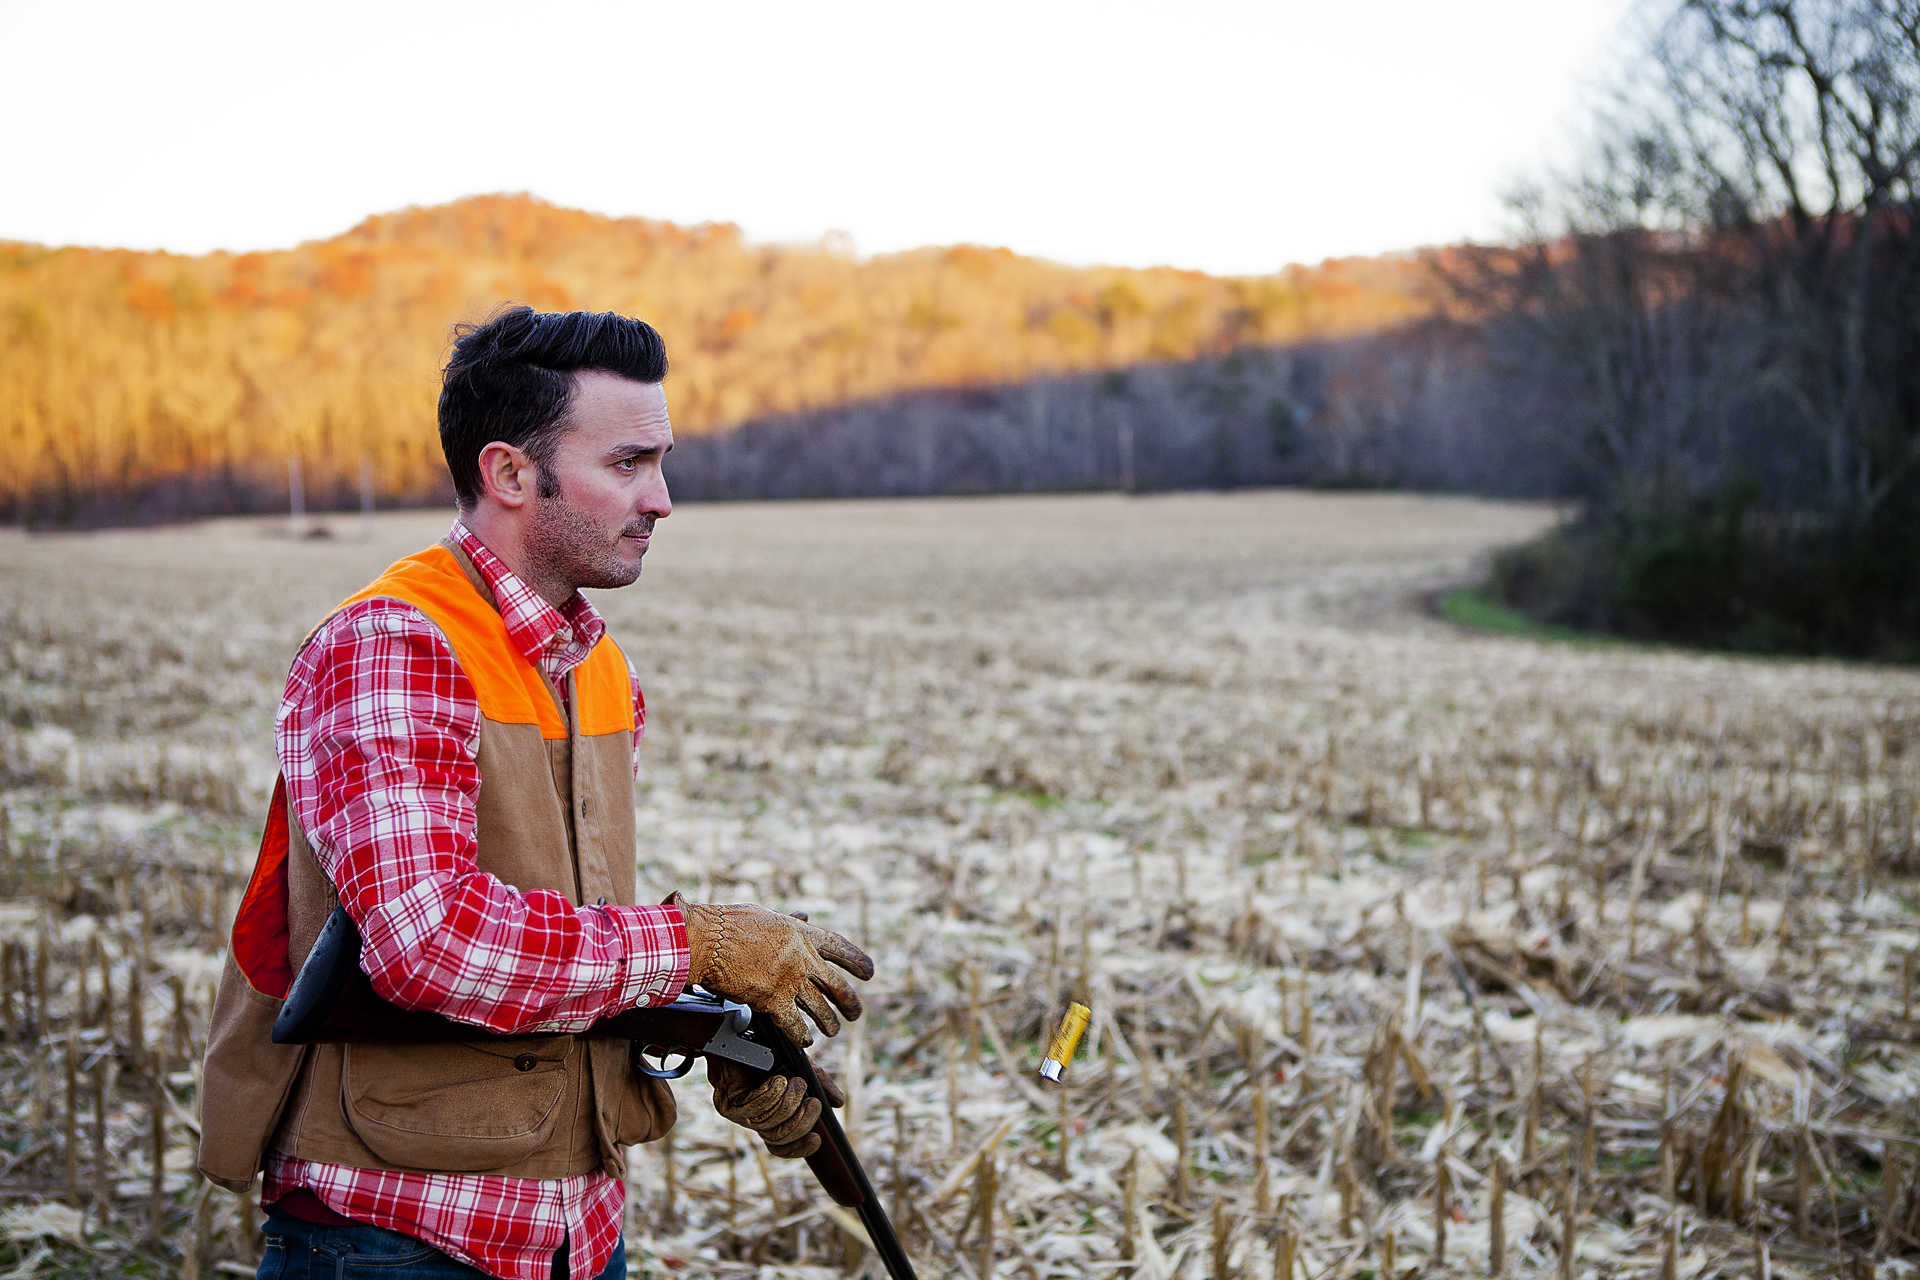 ADV007_Hunting_Mark_cornfield4.jpg